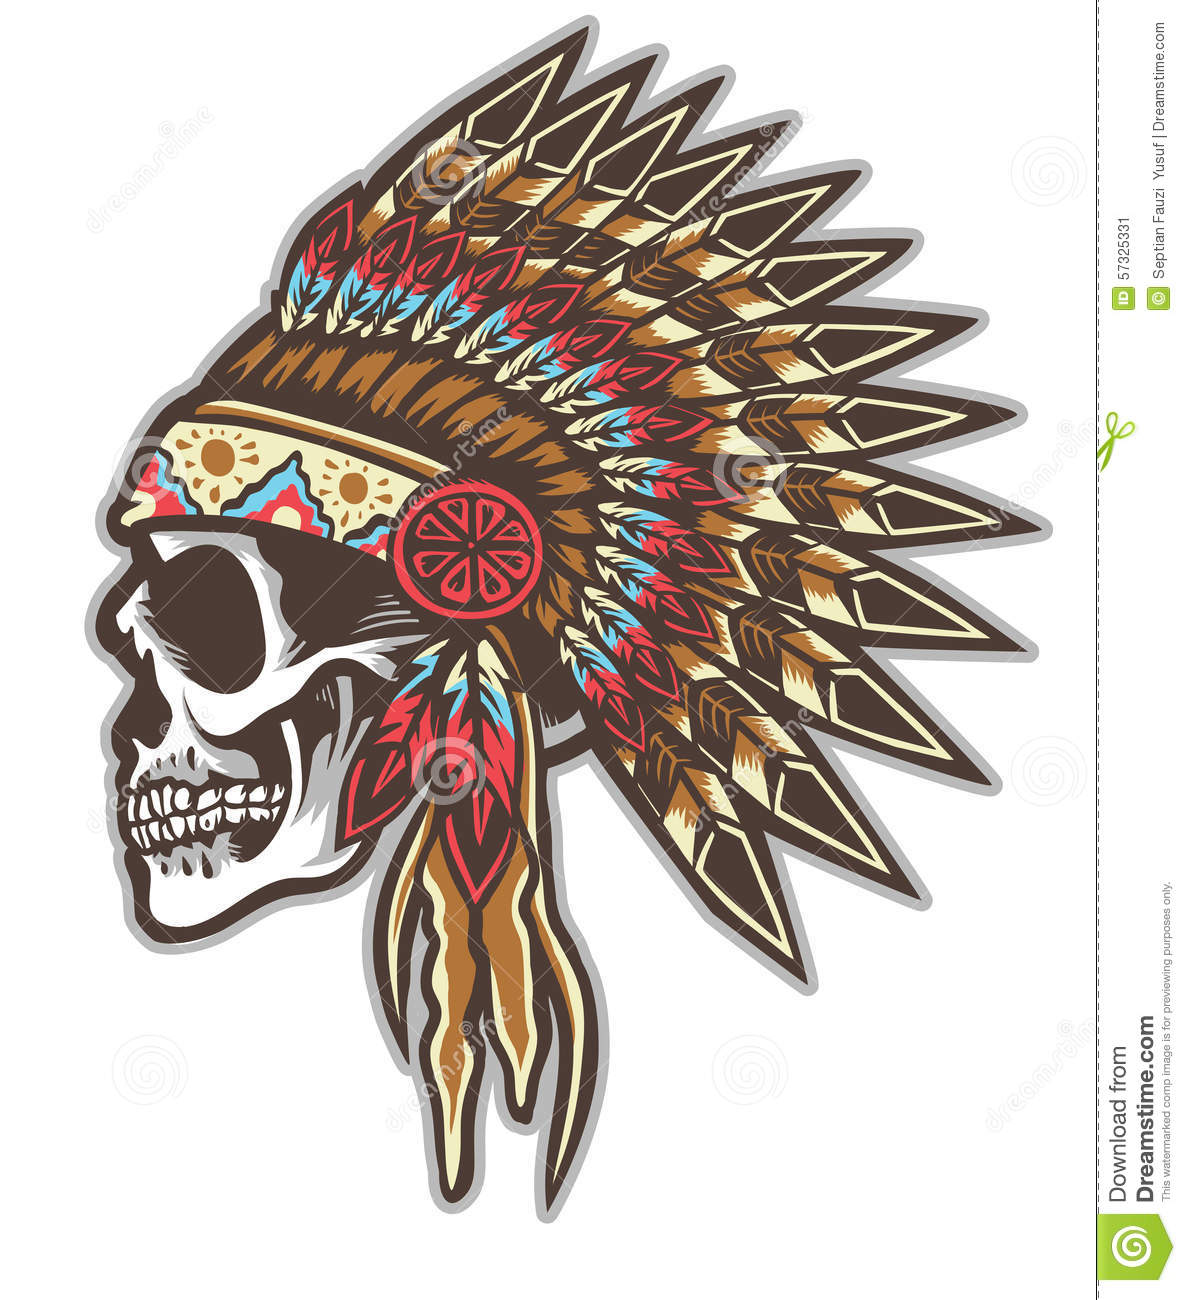 Indian Skull Stock Vector - Image: 57325331